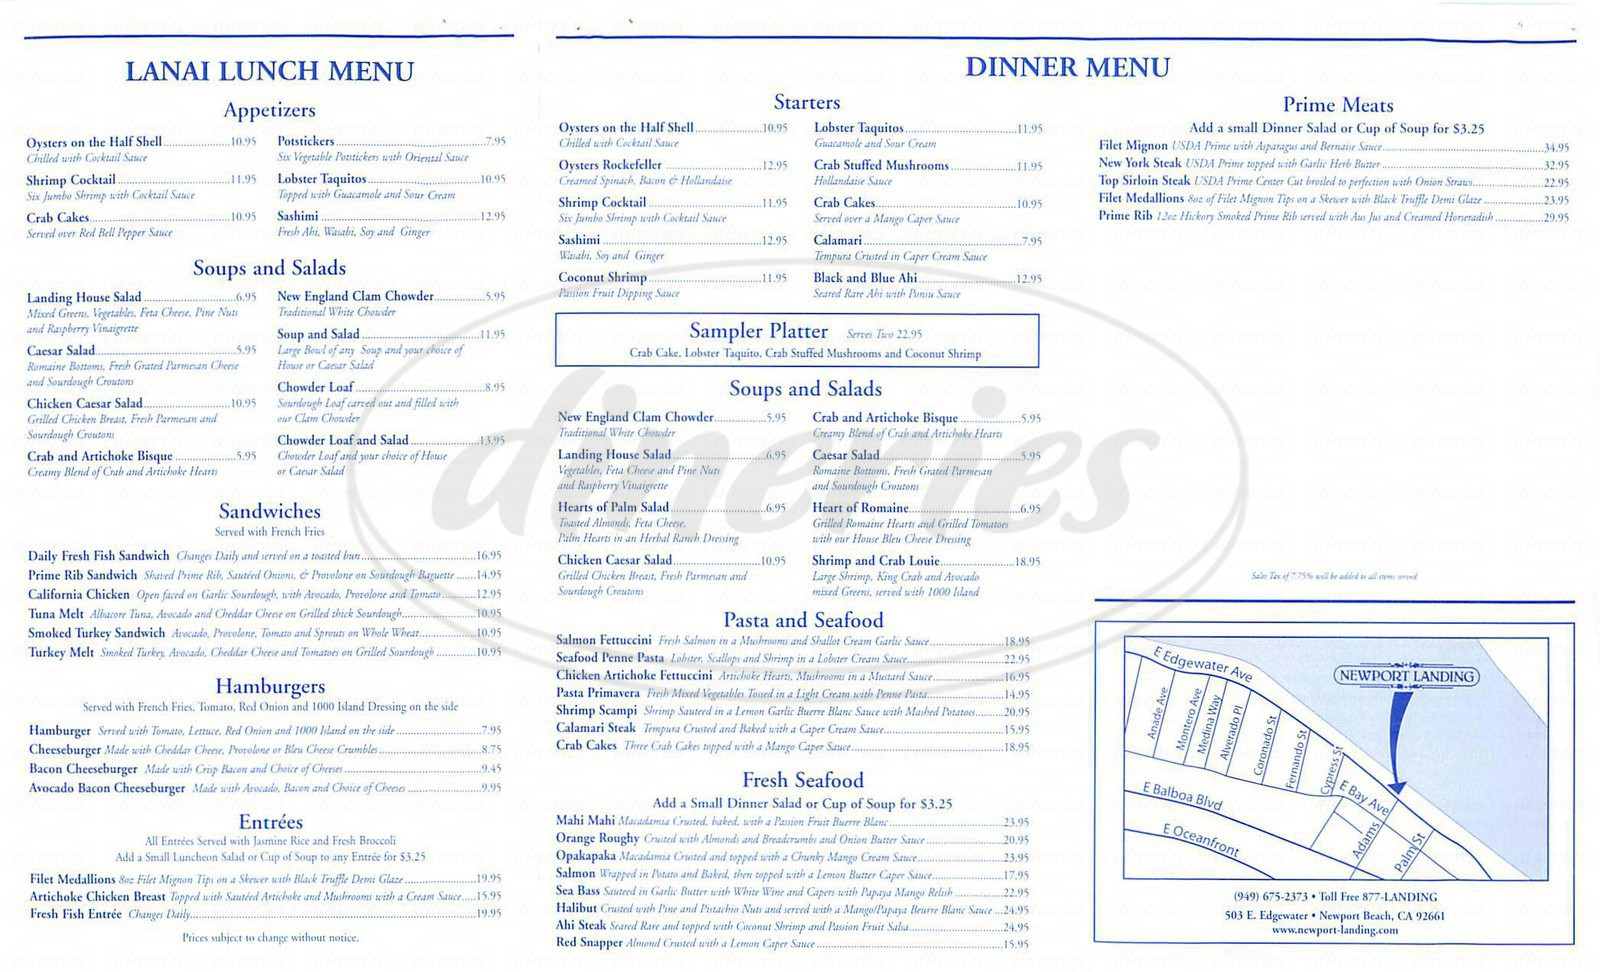 Big menu for Newport Landing Restaurant, Newport Beach